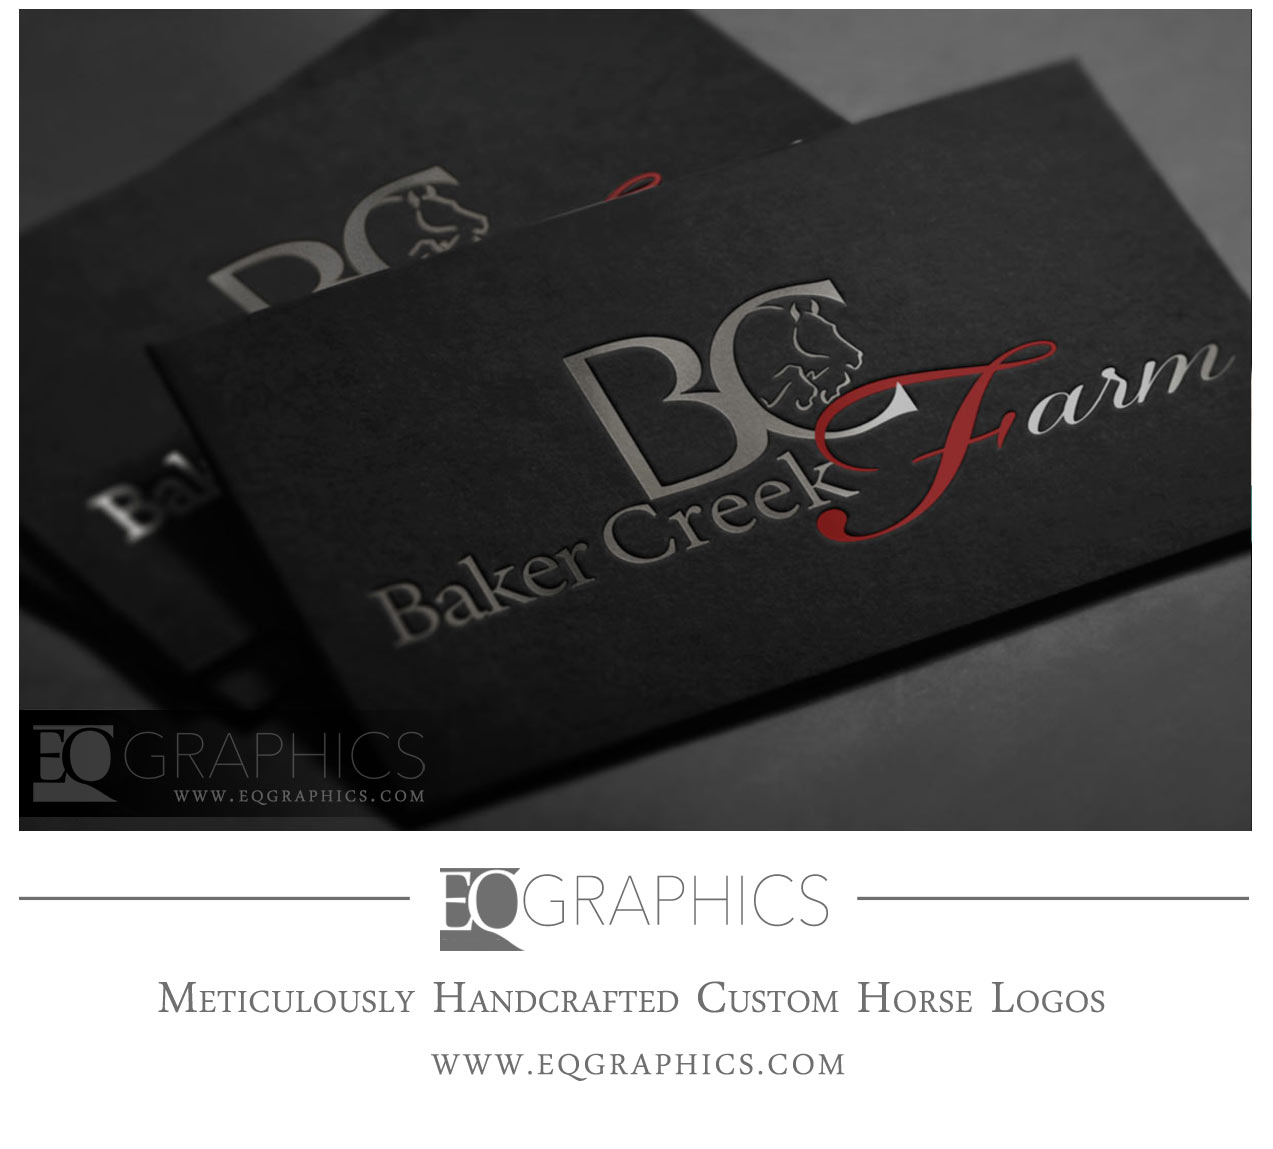 Baker Creek Farm Logo Design by EQ Graphics Horse Logos for Jumping Farms